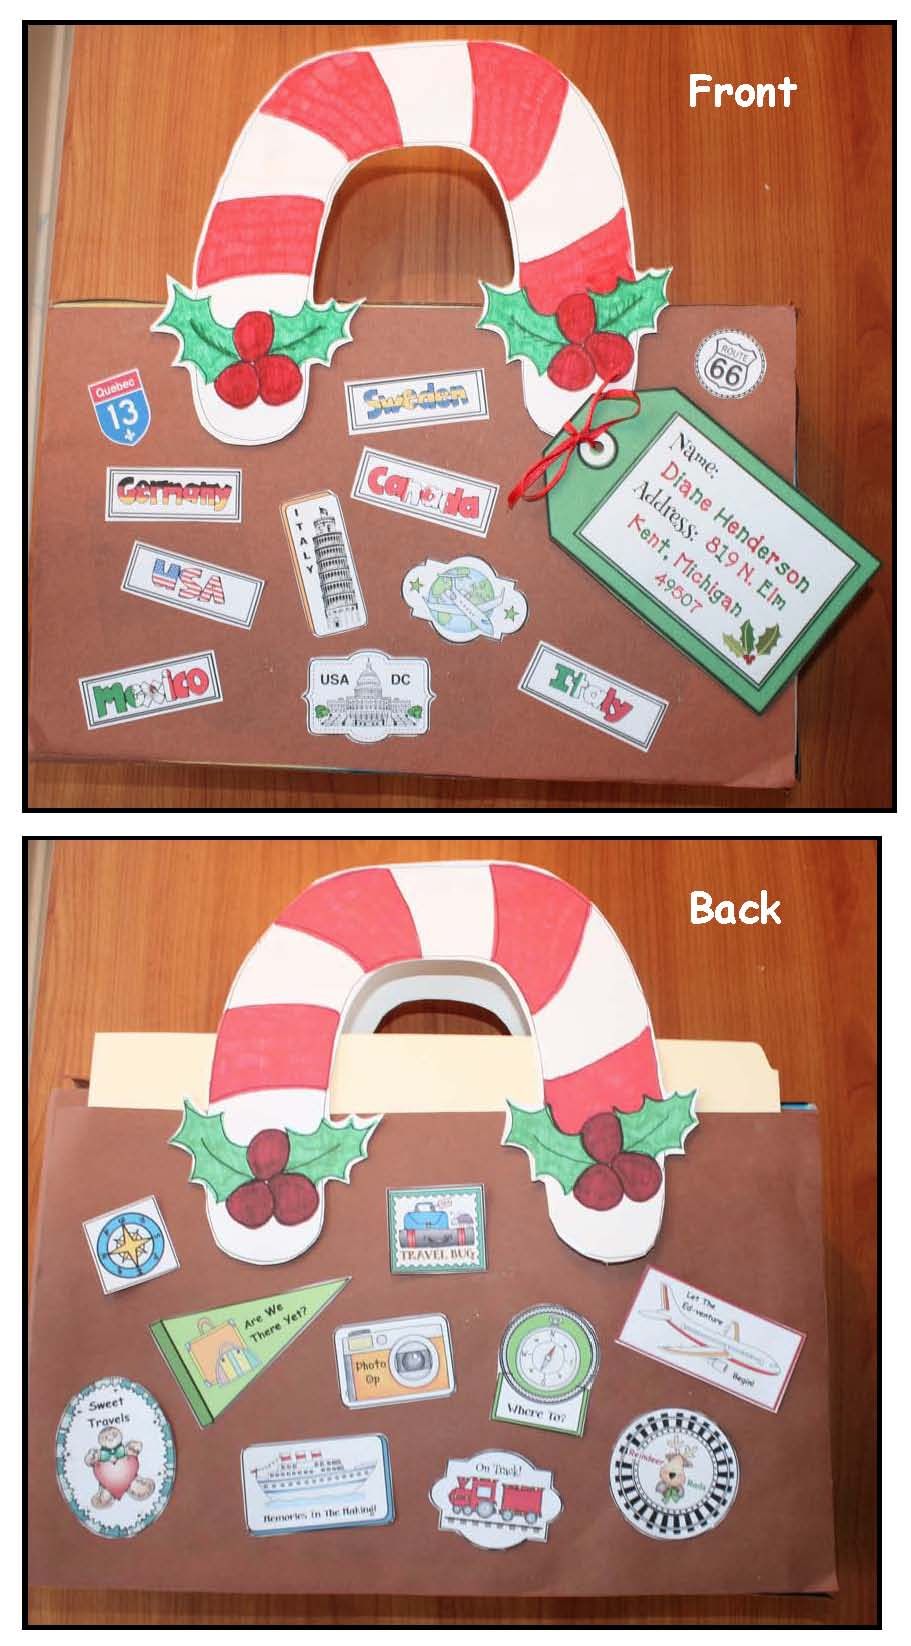 Christmas Around The World activities, Xmas around the world activities, Christmas crafts, geography activities for early elementary, gingerbread activities, passports for school, geography passports, passport craft, passport stamps, suitcaase stamps, suitcase stickers, travel stickers, December writing prompts,